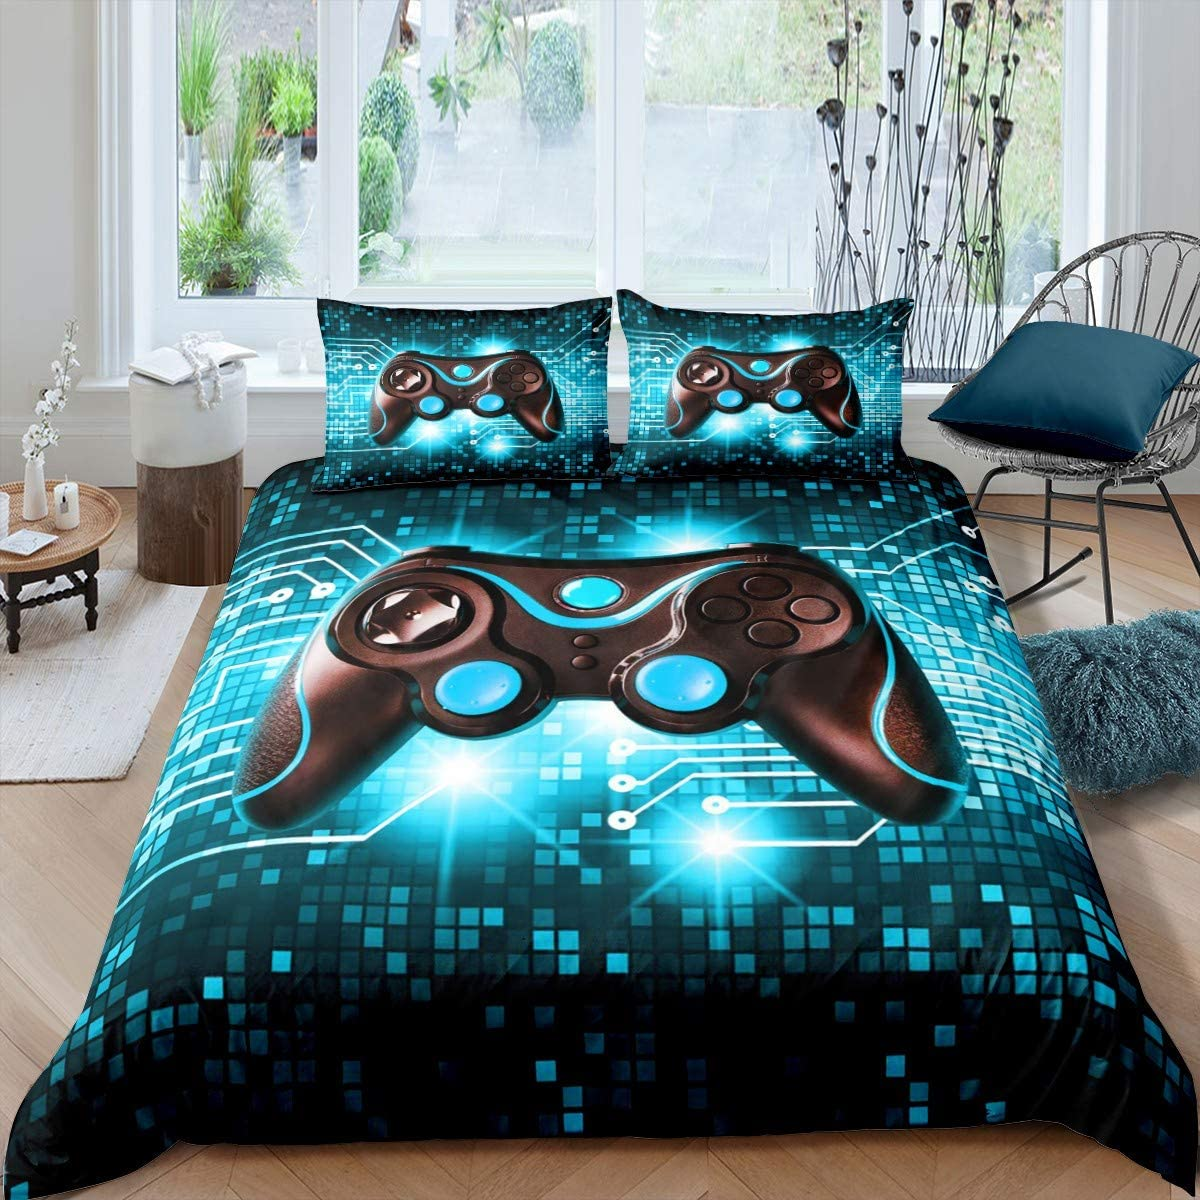 Boys Gamer Controller Comforter Cover,Gaming Gamepad Bedding Set Kids Teens,Game Room Decor Duvet Cover,Video Games Action Buttons Quilt Cover Youth Children,Modern Technology Twin Size